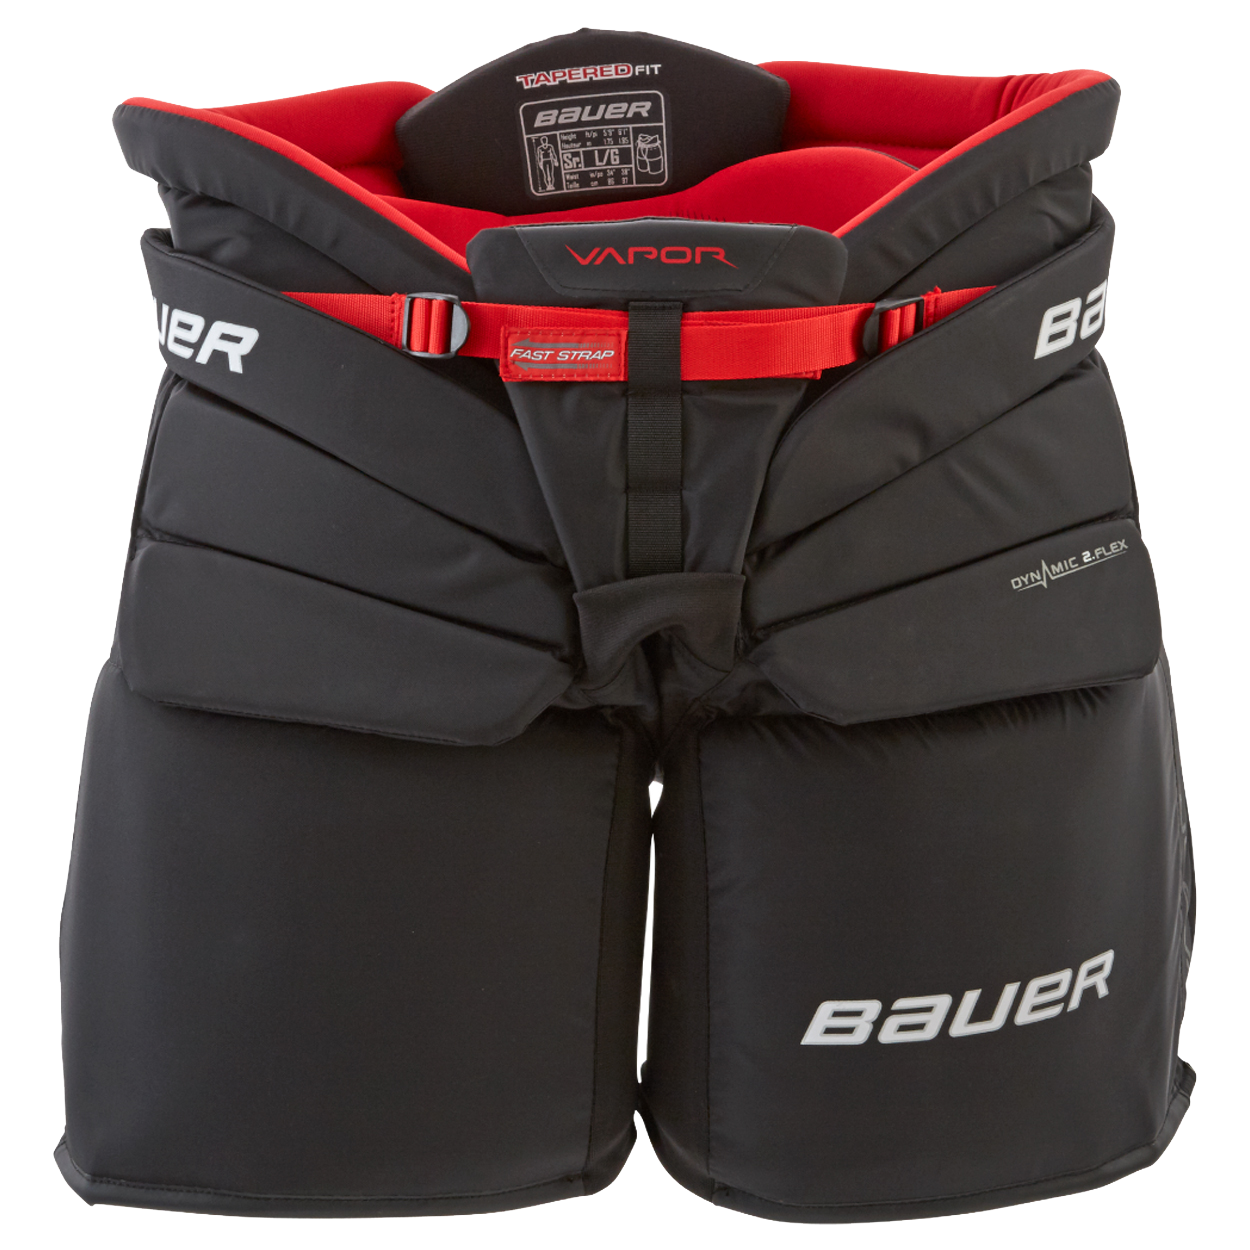 Vapor X2.9 Goalie Pant Senior,,Medium